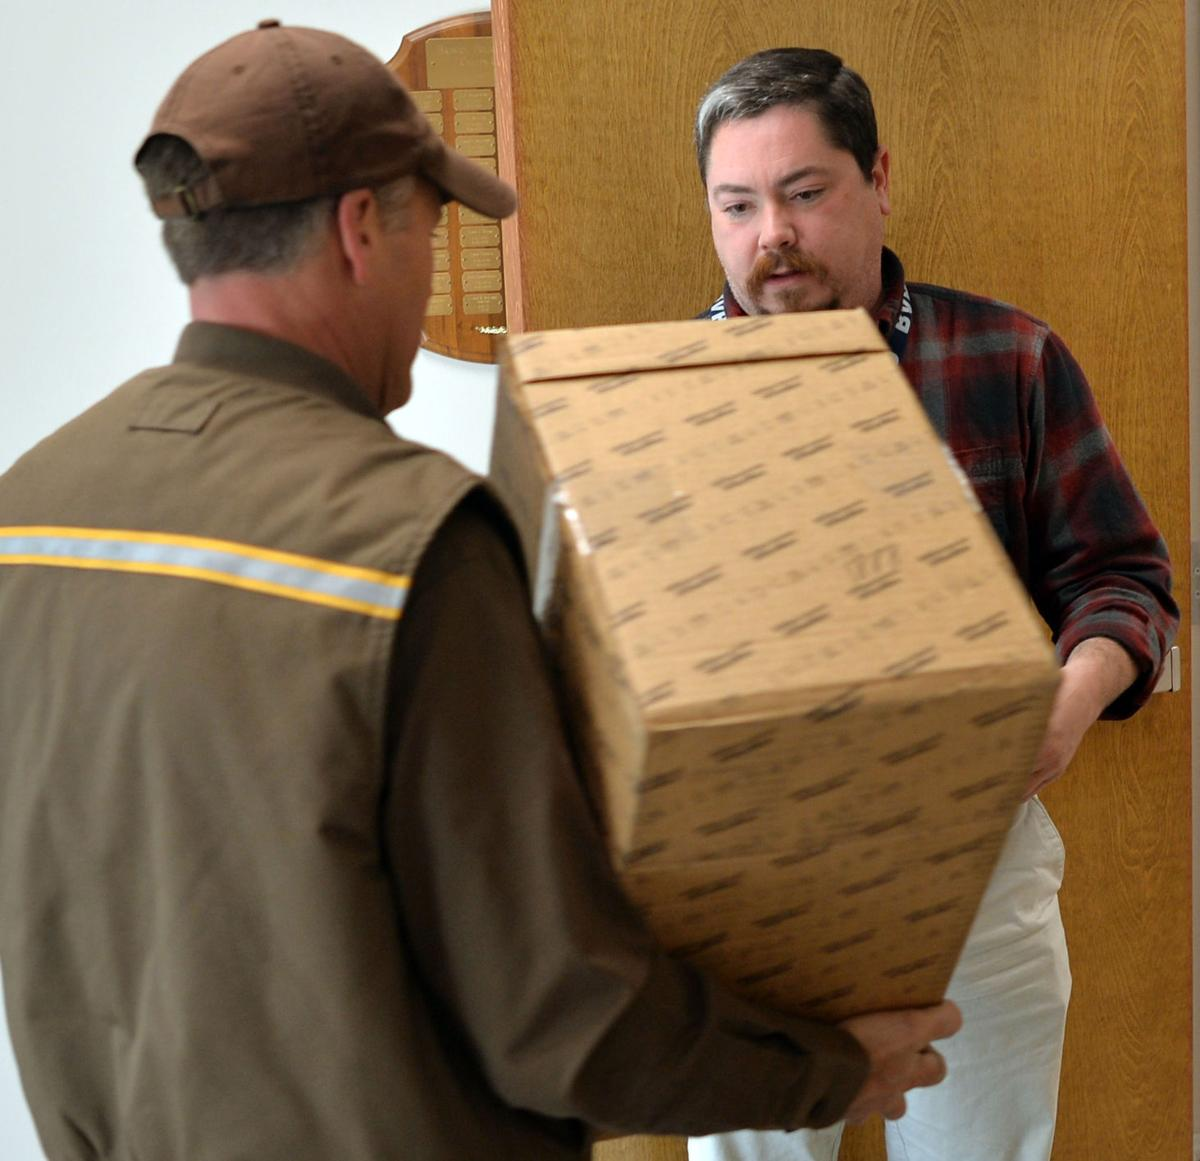 A day in the life of a UPS delivery driver during busiest